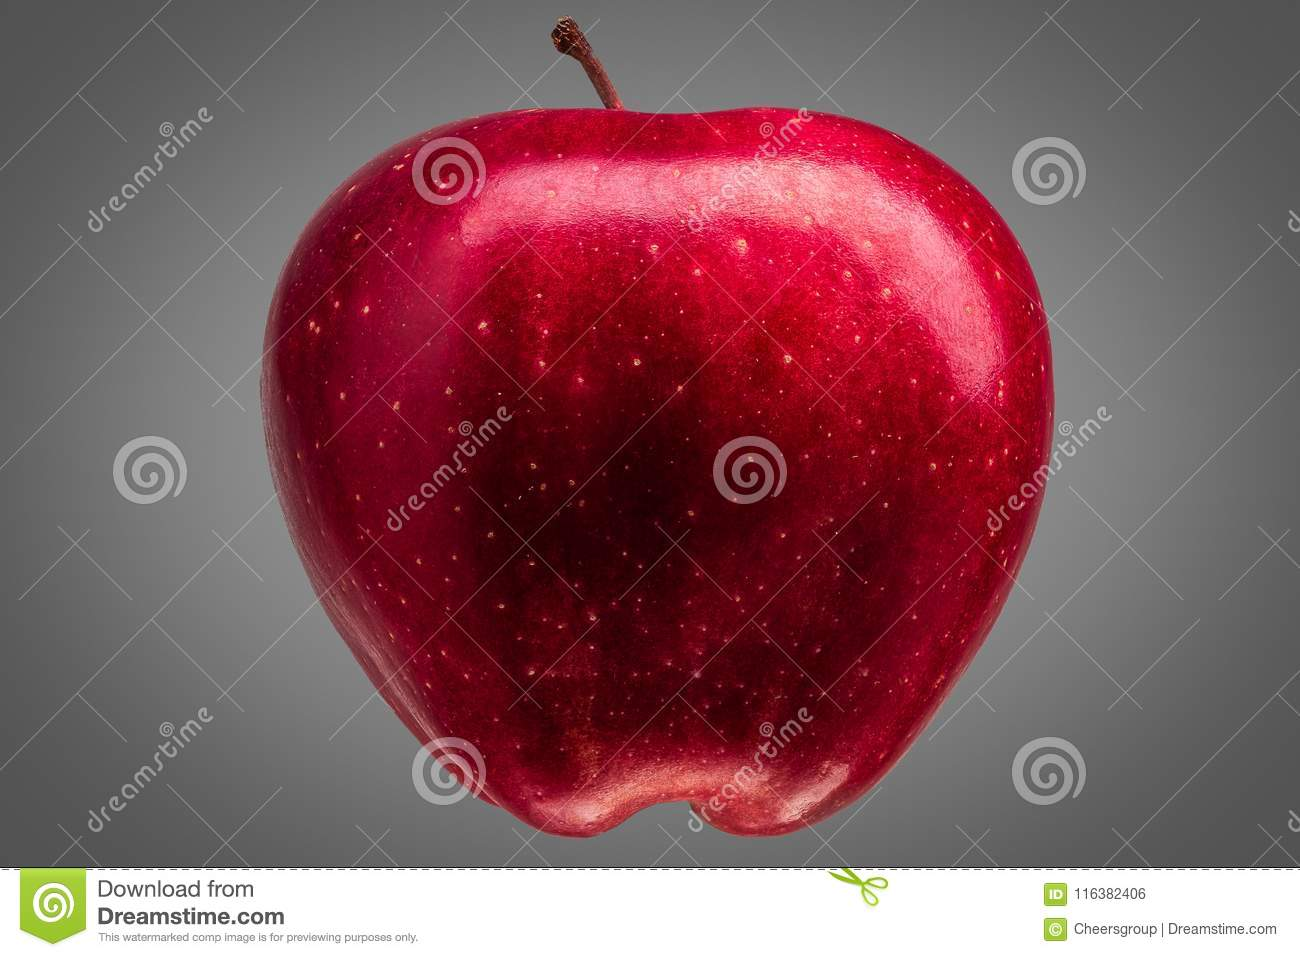 Single delicious red apple on grey background